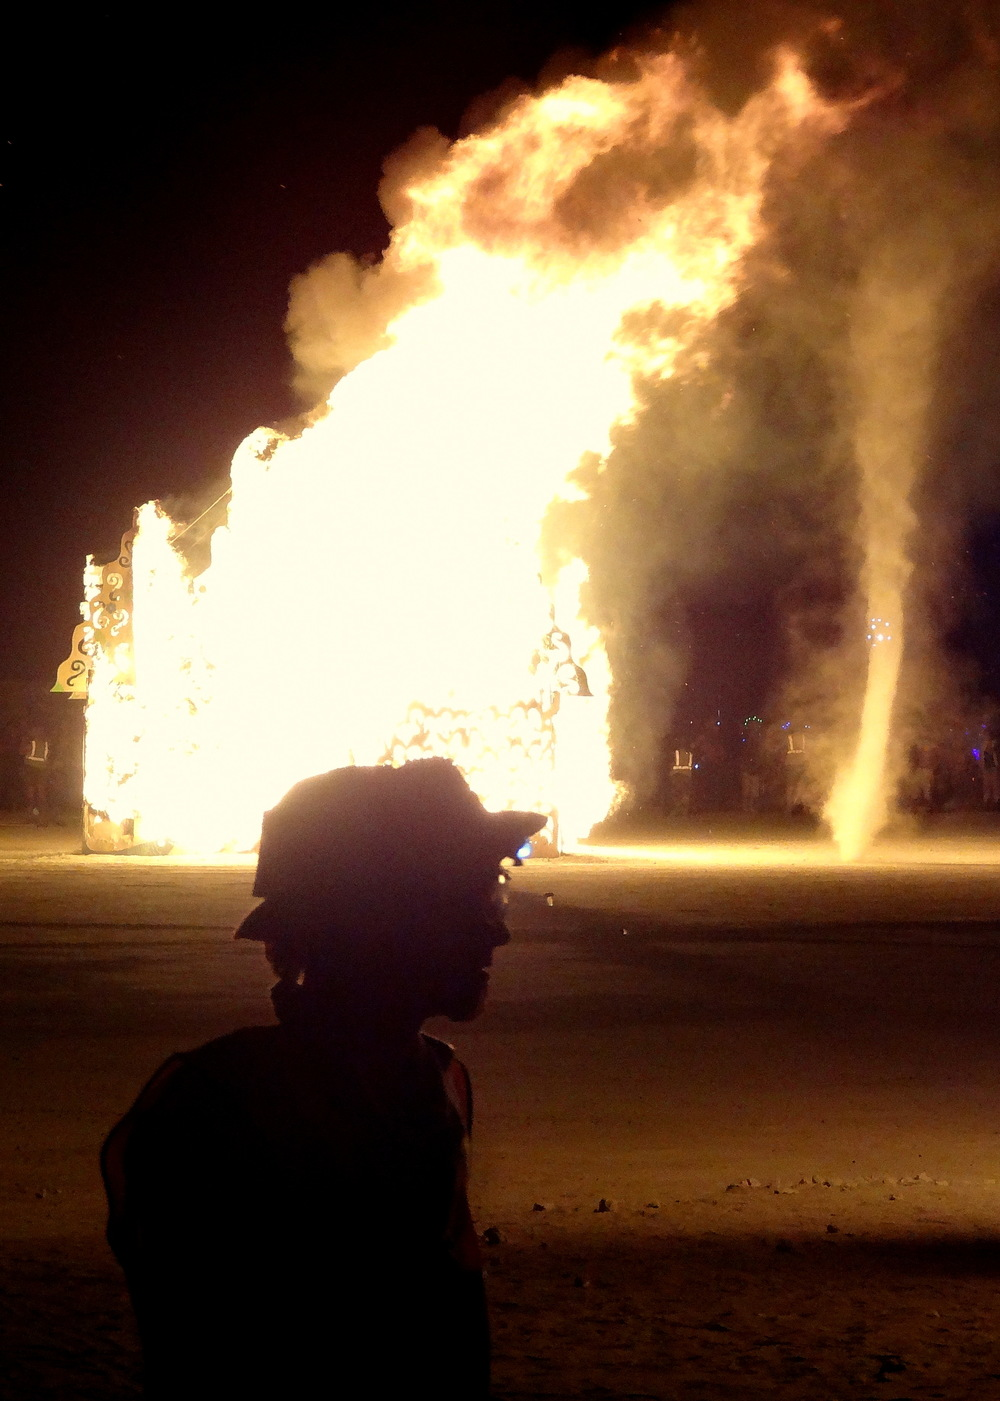 Part of the CORE burn on Thursday night. There are four groups of five of these smaller sculptures, which are all burned at once. The wind patterns on the playa create dust devils naturally.